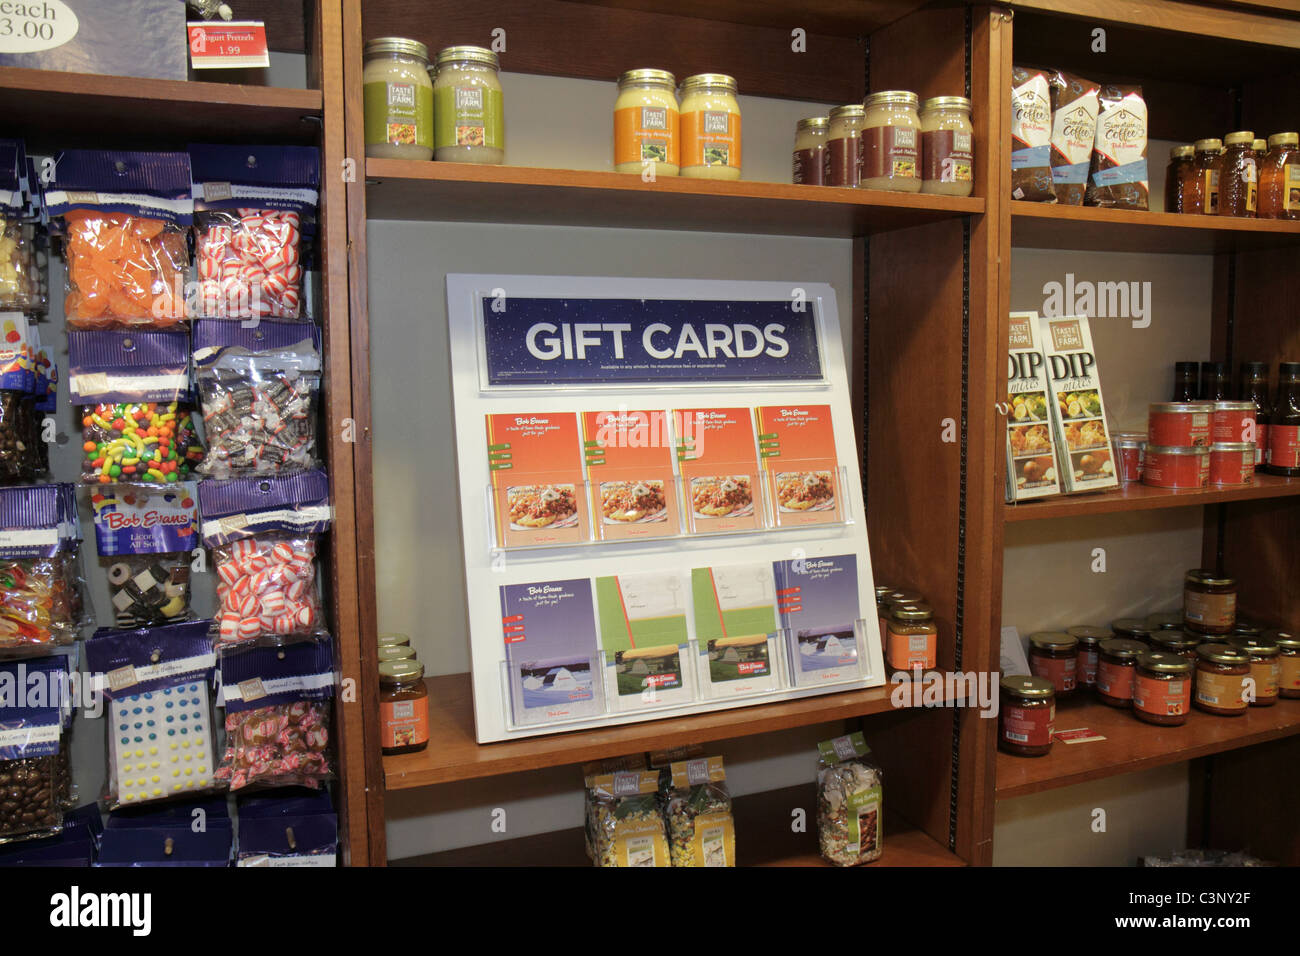 Tampa Florida Temple Terrace Bob Evans Restaurant Gift Shop Shopping Cards Retail Display Shelves Candy